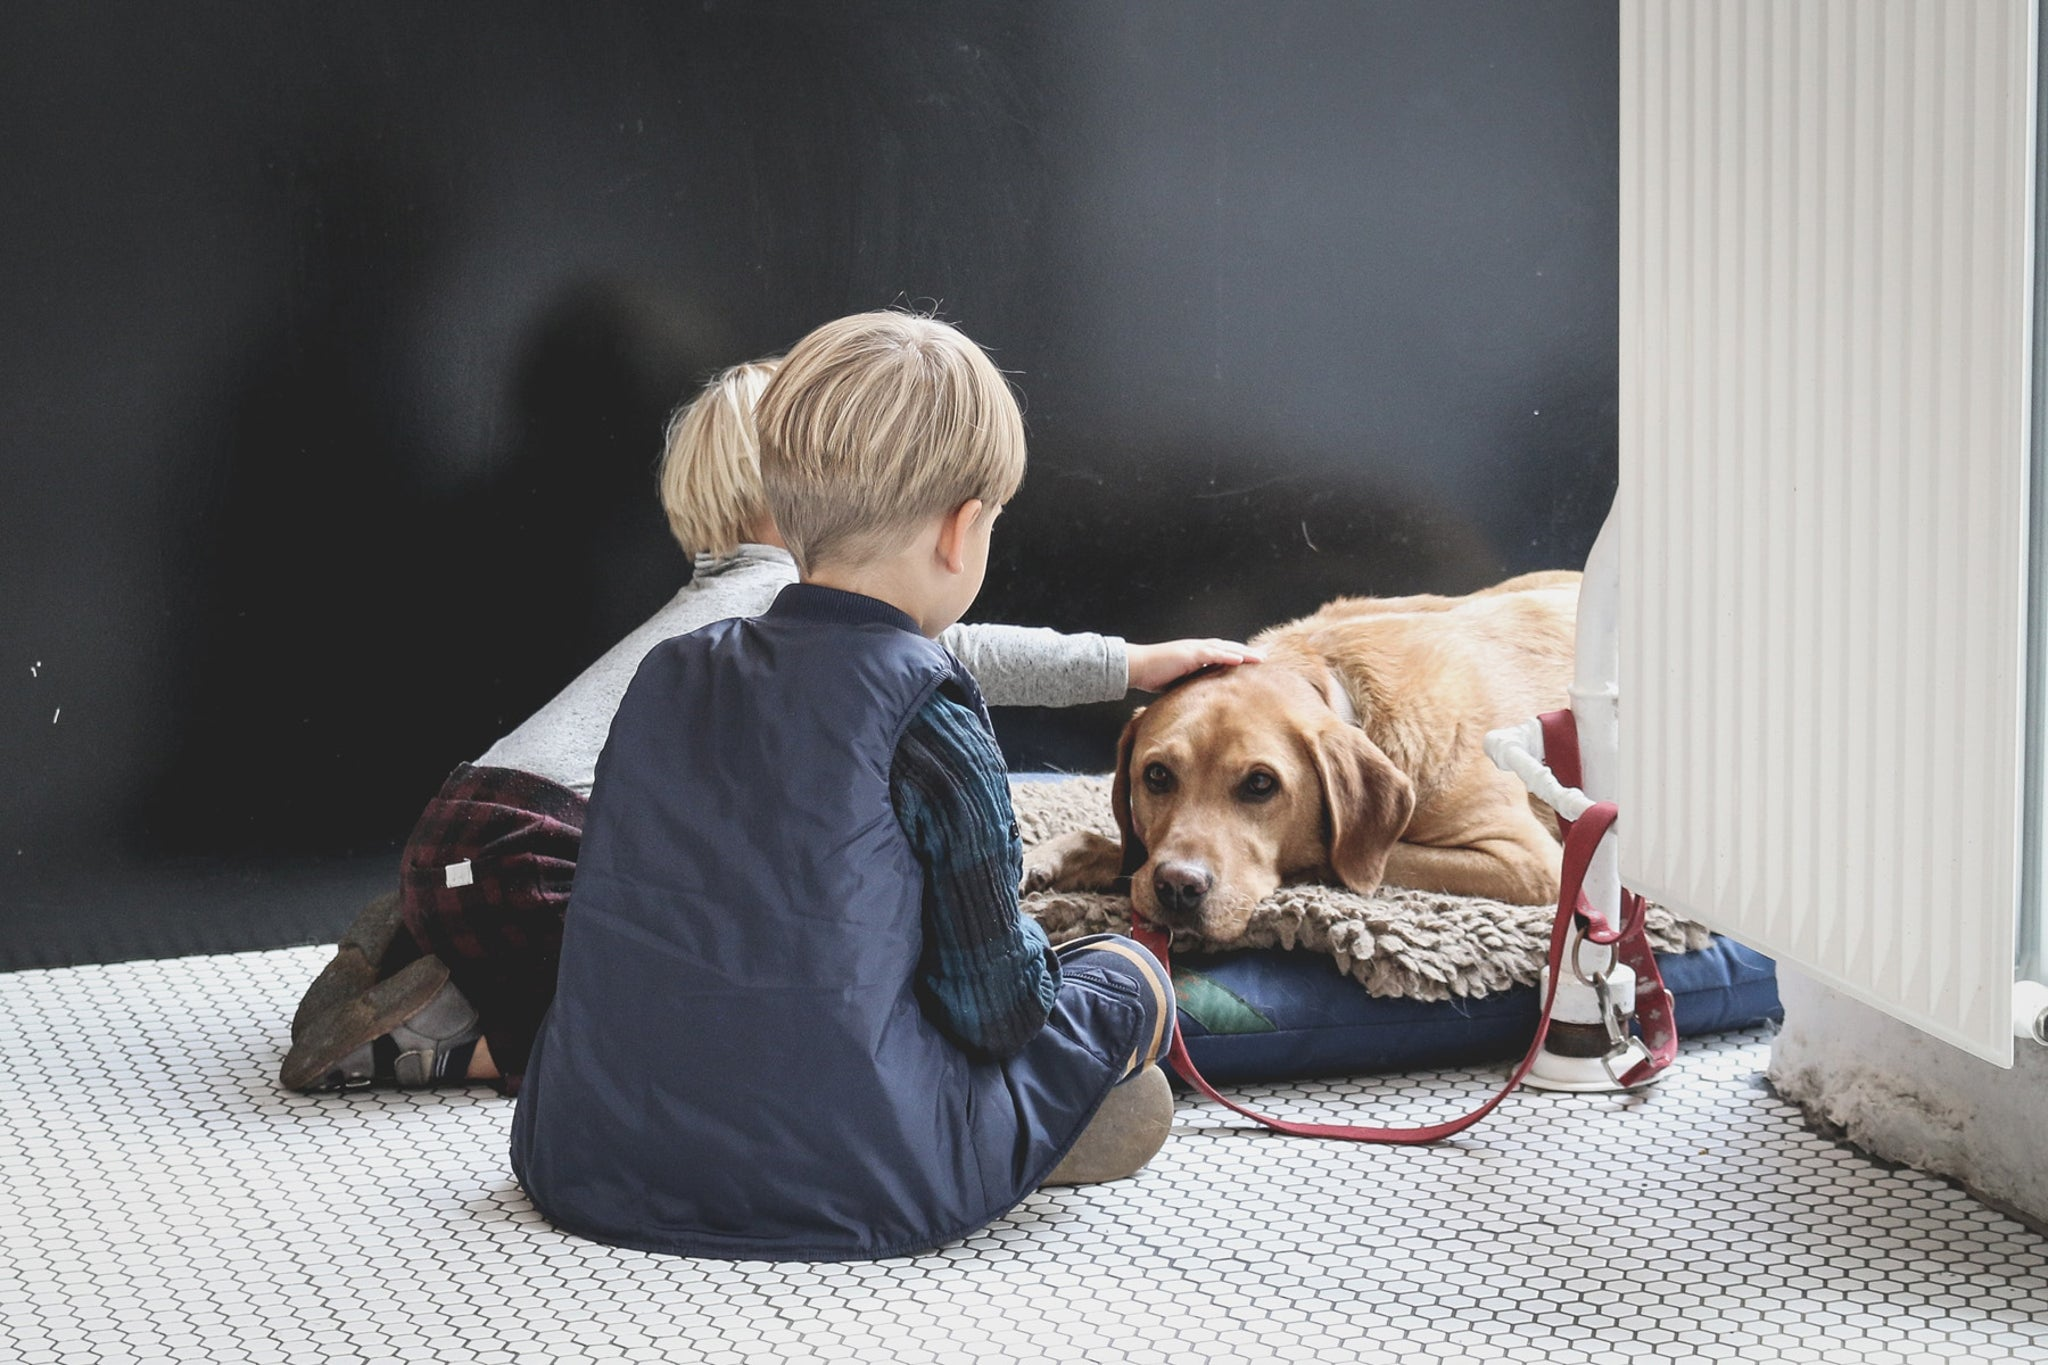 Helping Children Cope When the Family Dog Has Cancer